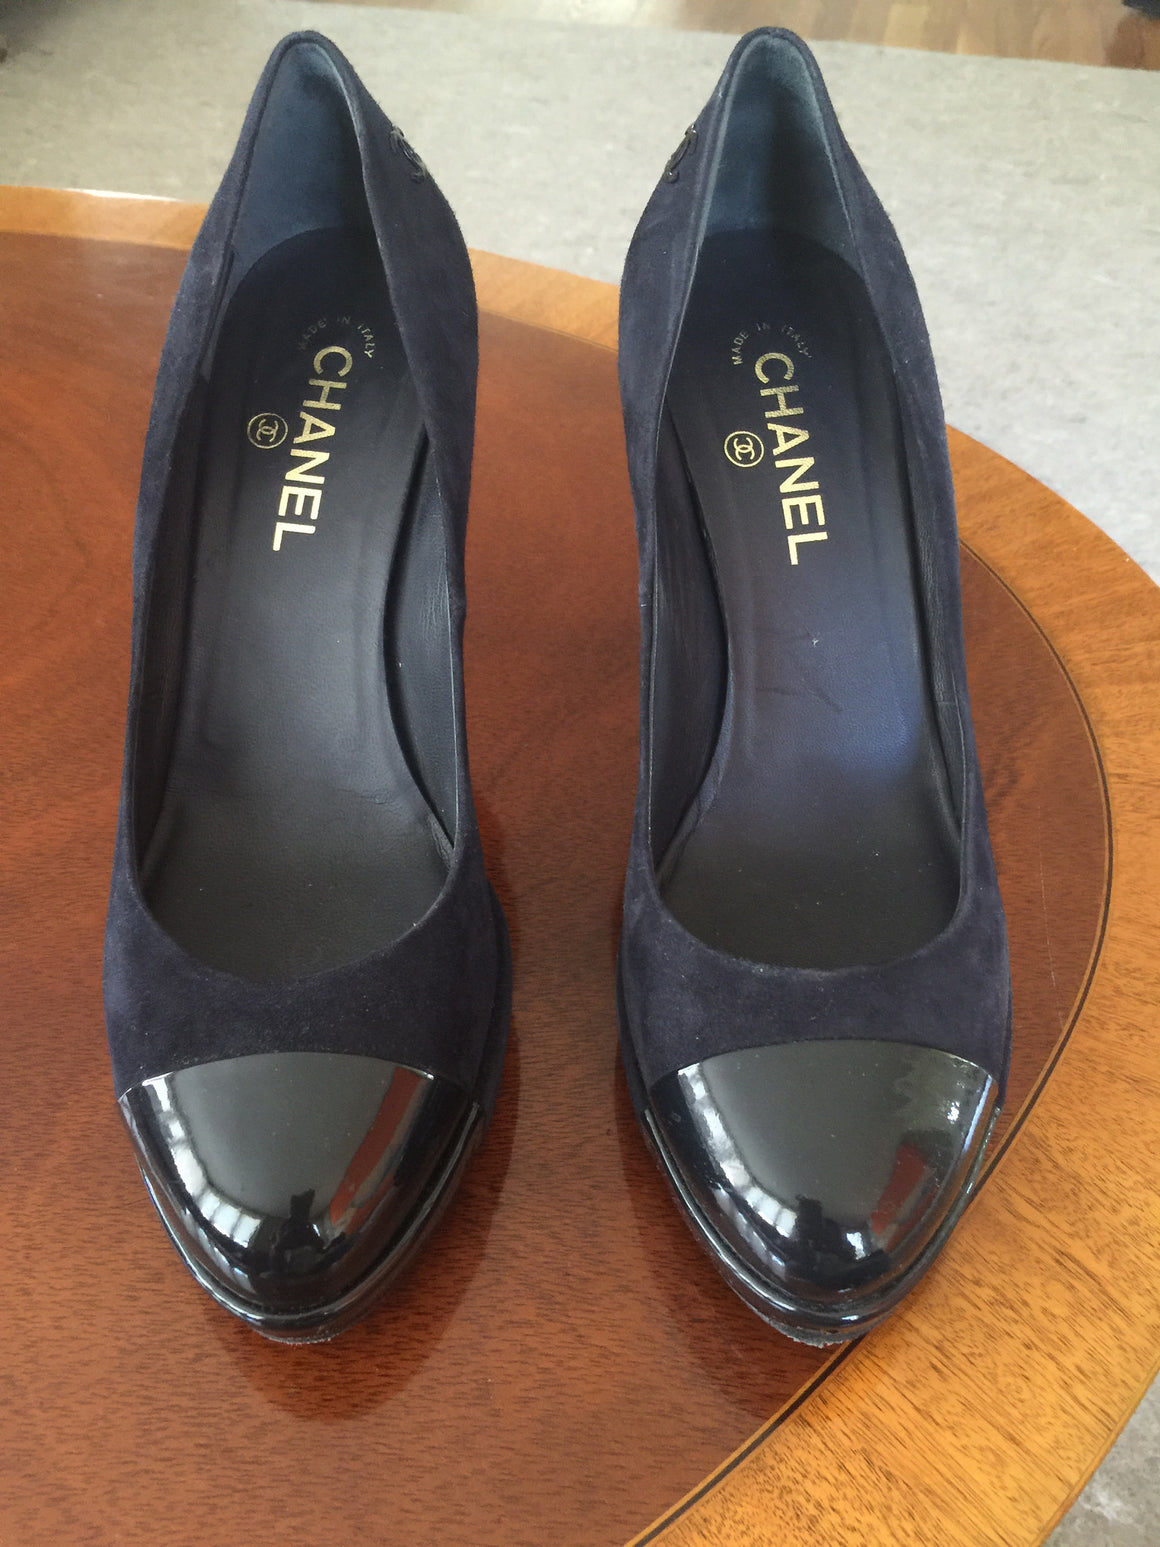 Authentic Chanel Pumps - New York Authentic Designer - Chanel